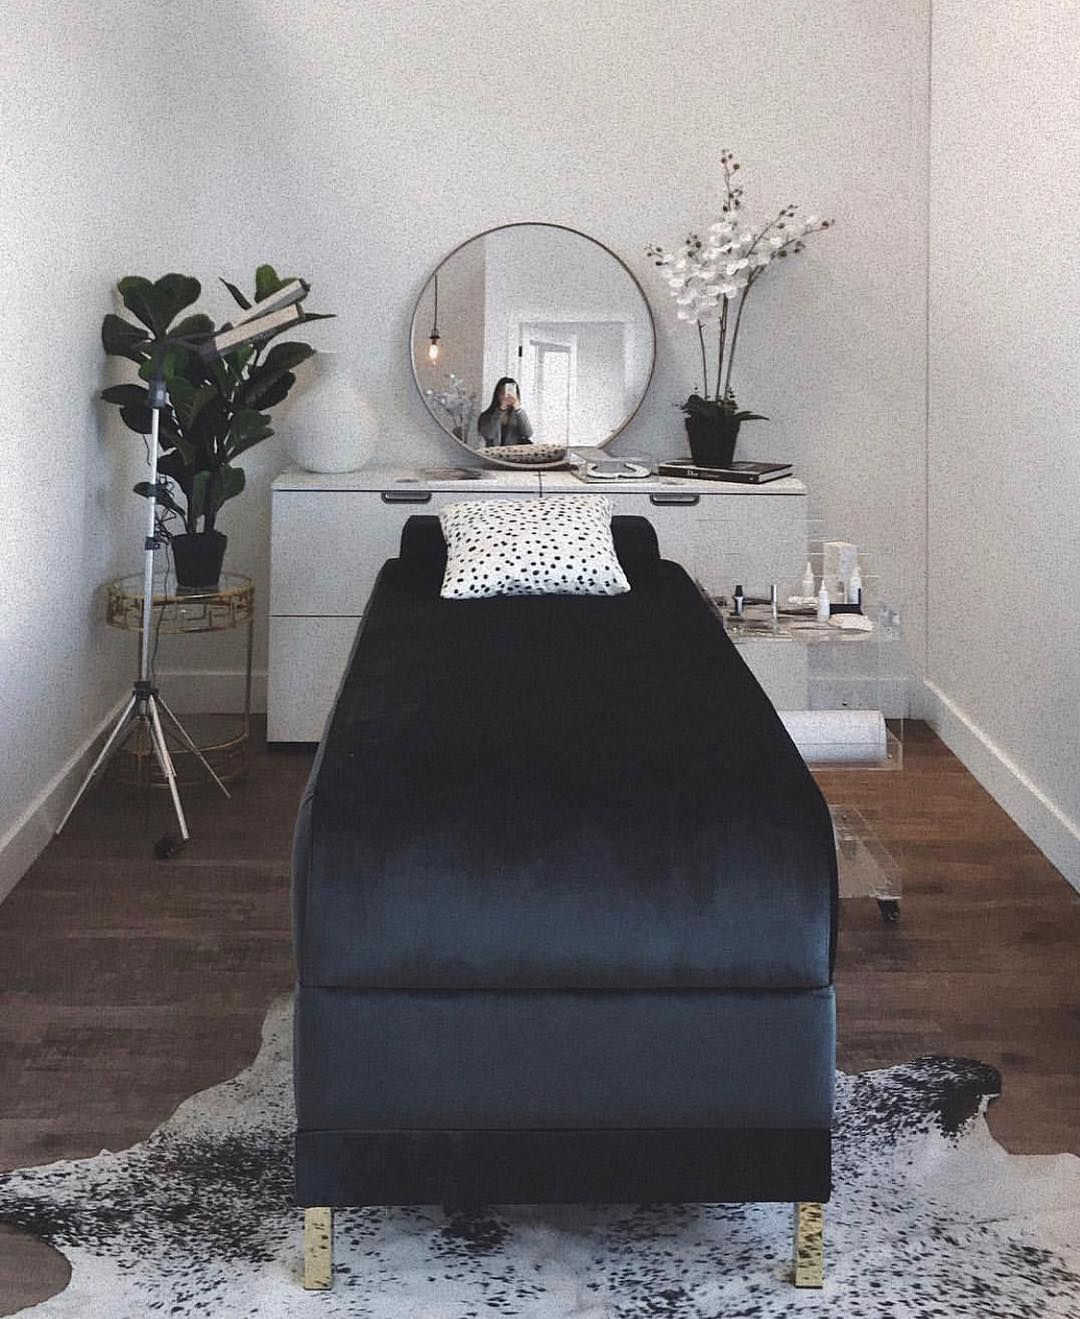 Lash Room Envy By Vannie Slpro Learn More On Her Page Inspiration Eyelashextensions Eyelashes Lashes Esthetics Room Makeup Beauty Room Spa Room Decor